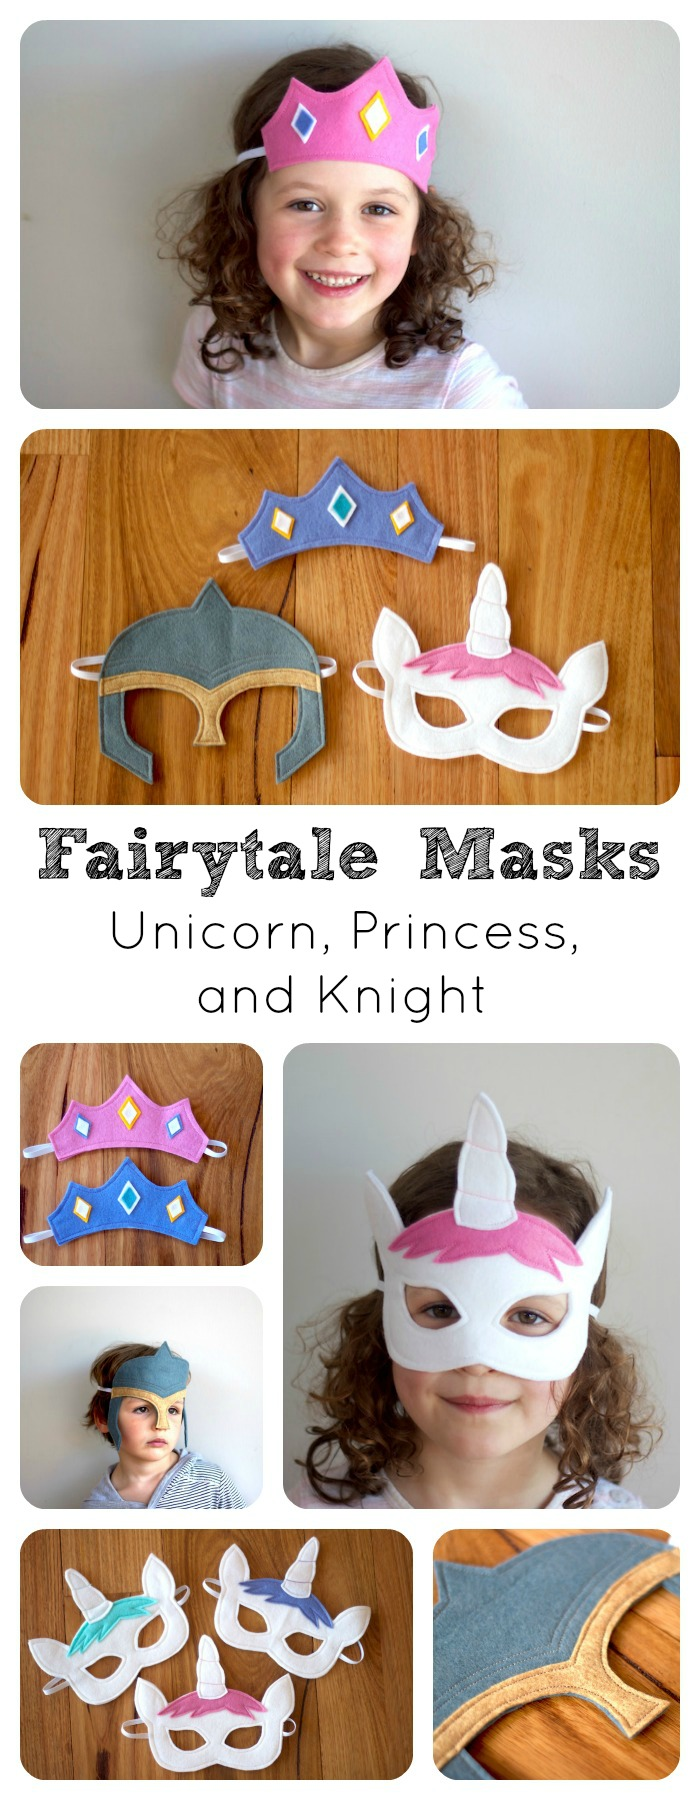 Fairytale Masks w text for Pinterest.jpg